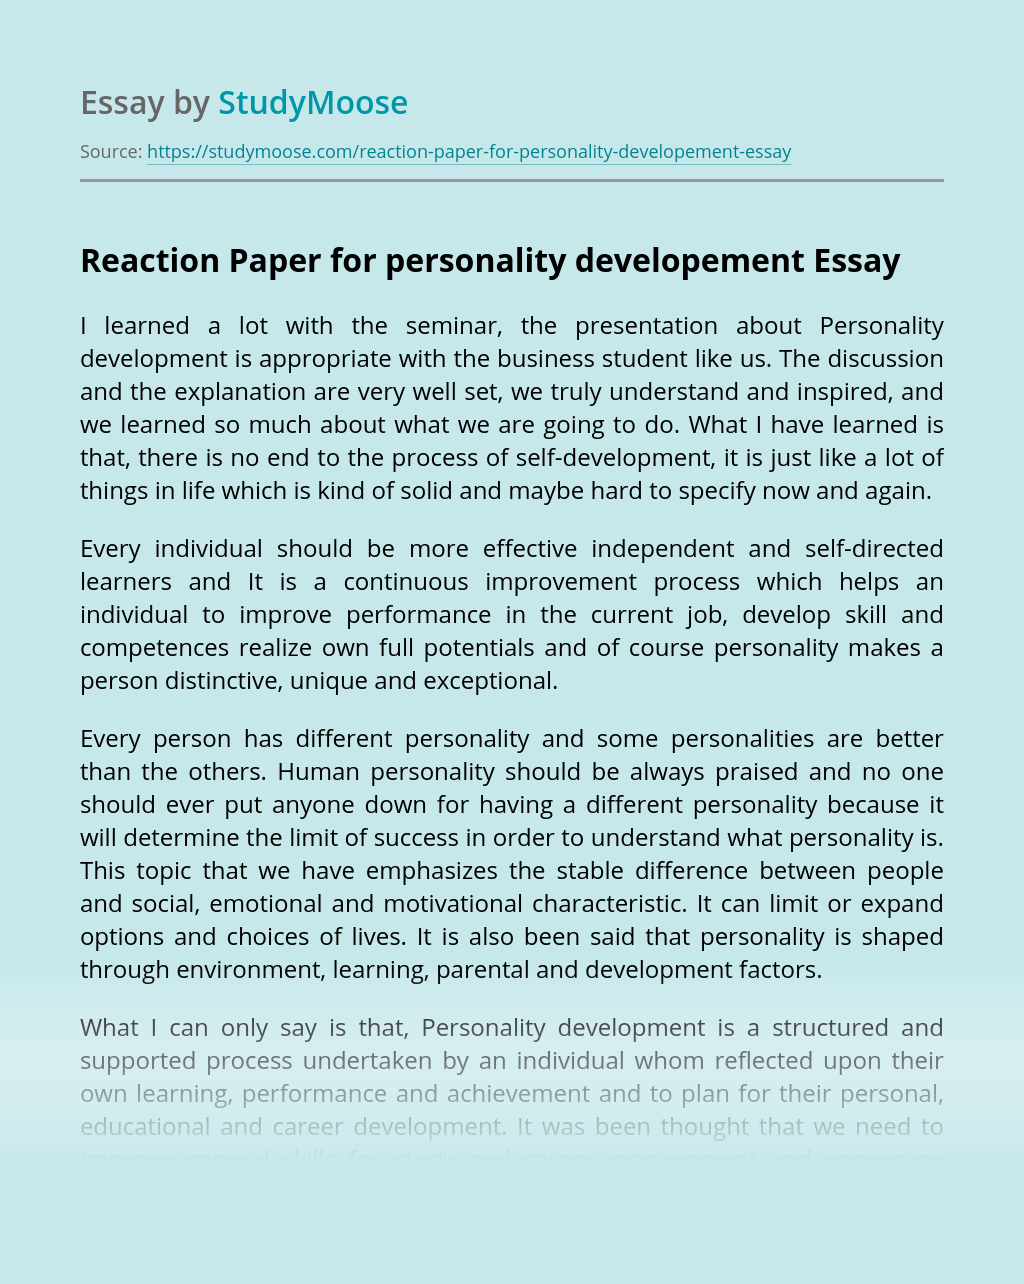 Reaction Paper for personality developement